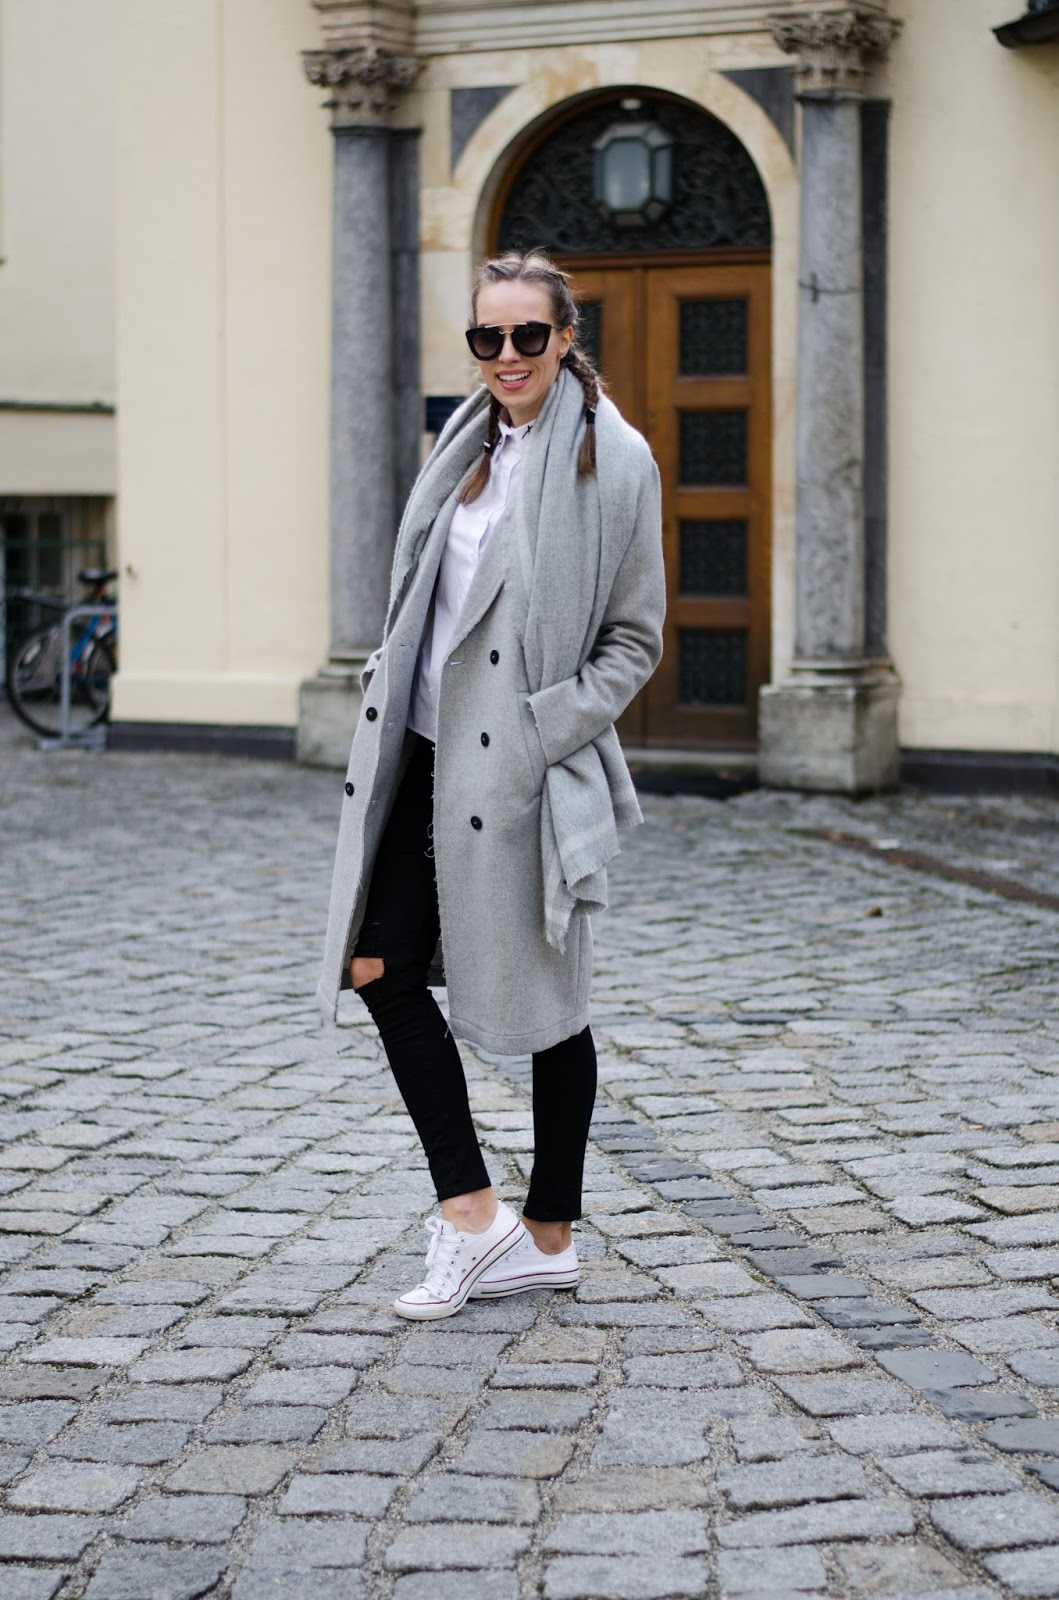 kristjaana mere gray coat black jeans converse french braids minimalist outfit